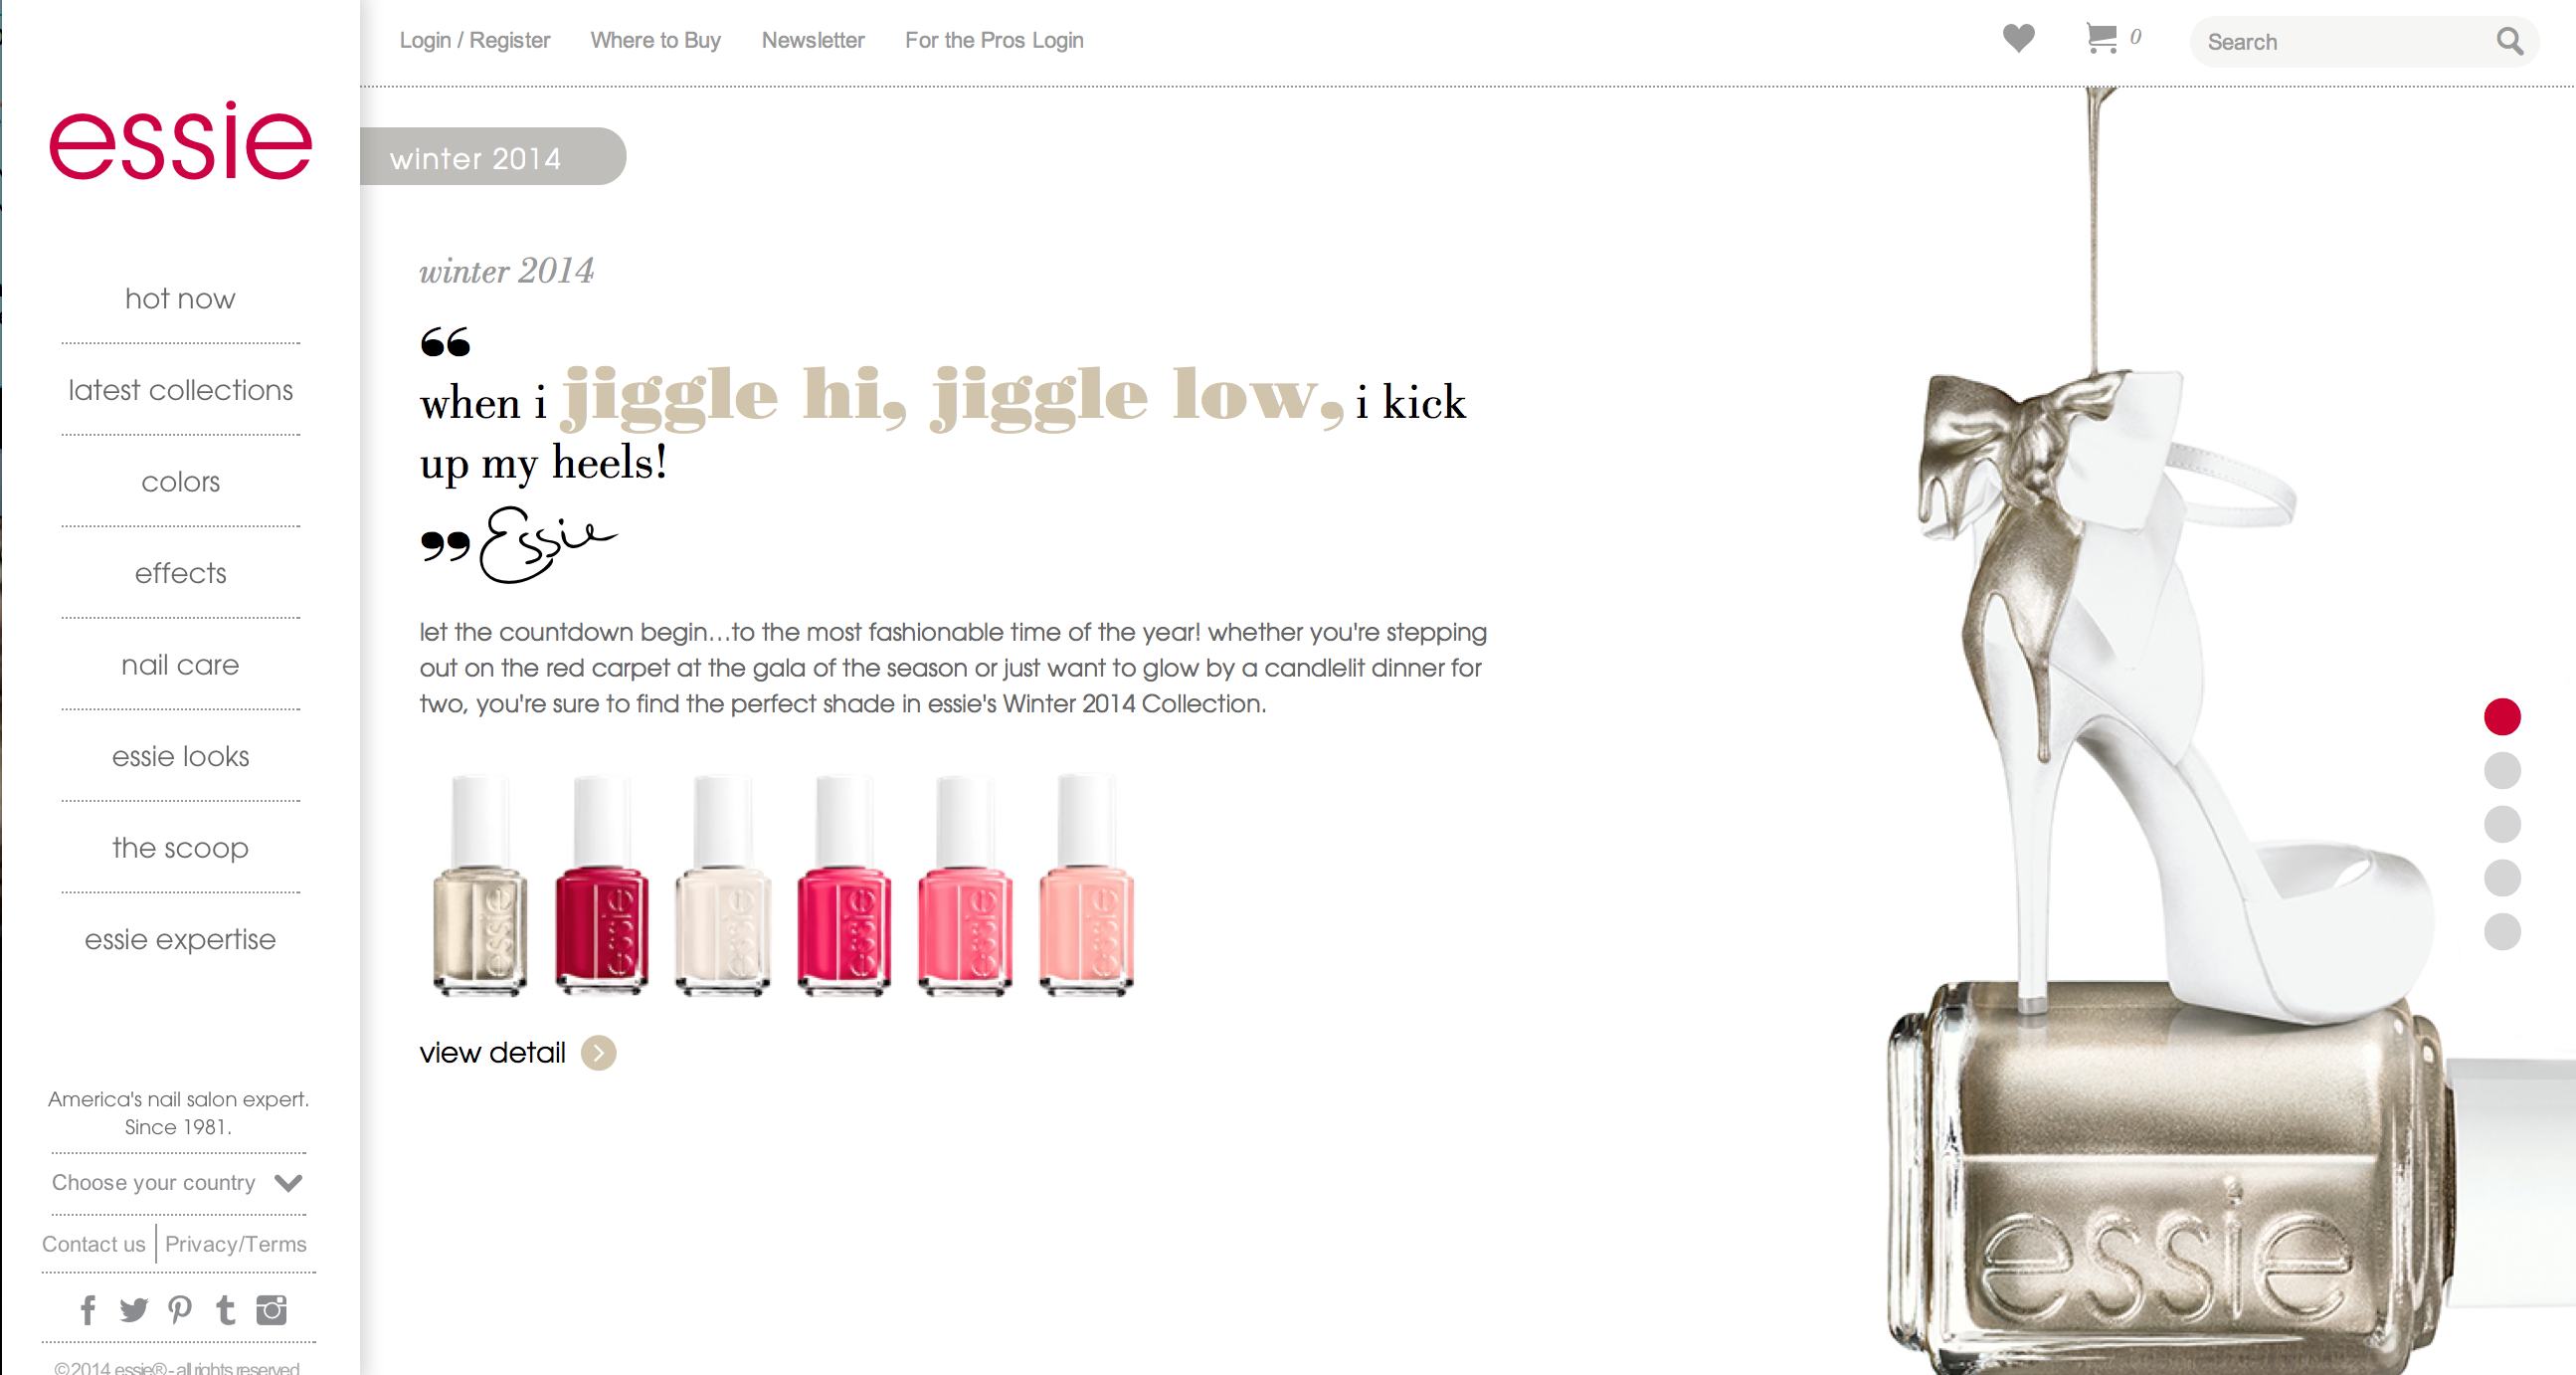 The nail polish brand Essie had a very unique website. I found their layout to be refreshing compared to the average website. The site had a picture and some sort of text next to it. Every 15 seconds or so the main content area would change to a different placement of a different picture and text (what the circles on the right are for). This inspired me because I really liked this format, along with their choice to put their navigation and header to the left. This pin is from: www.essie.com